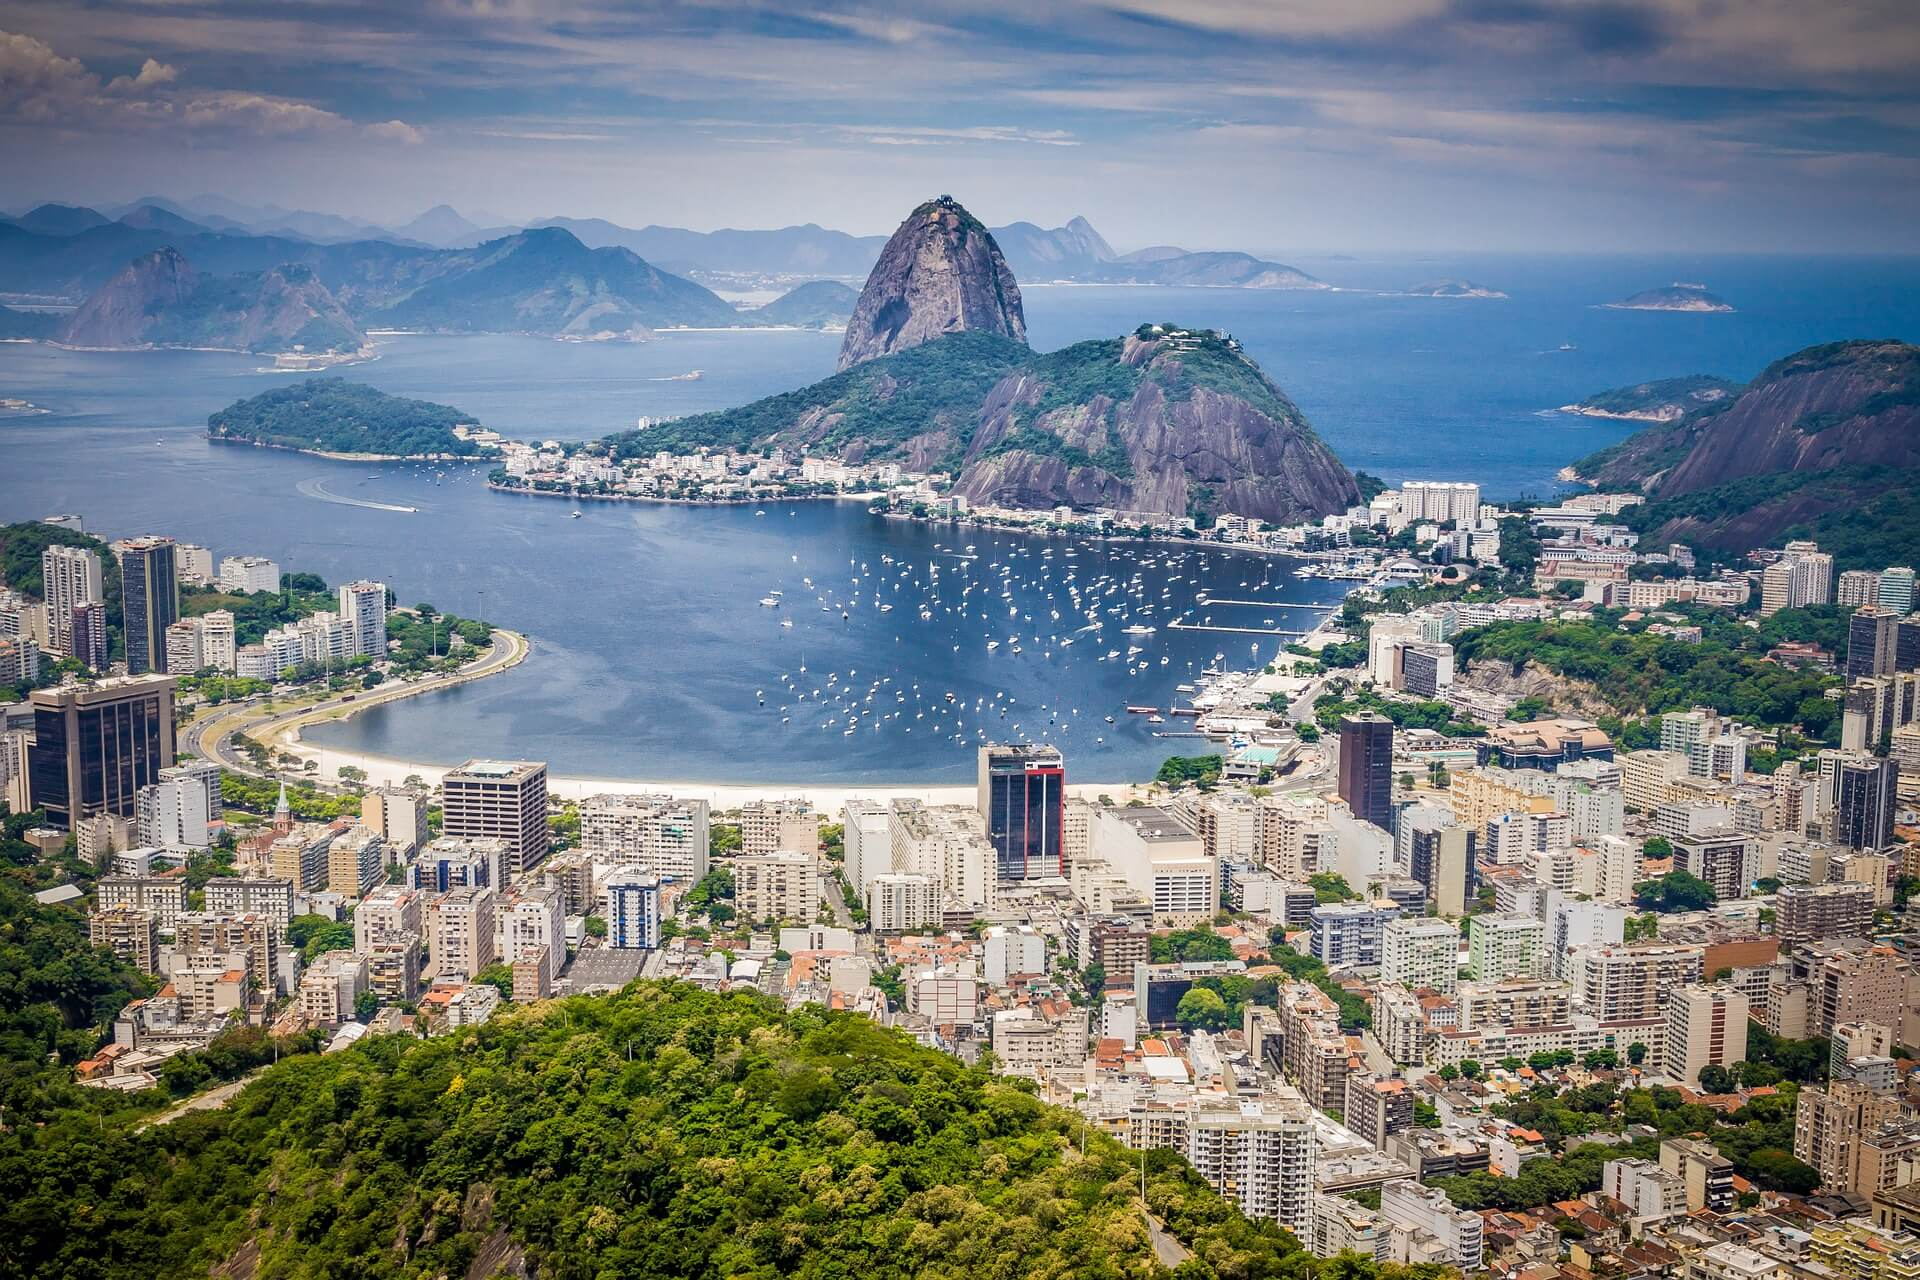 places america south visit amazing most brazil janeiro rio